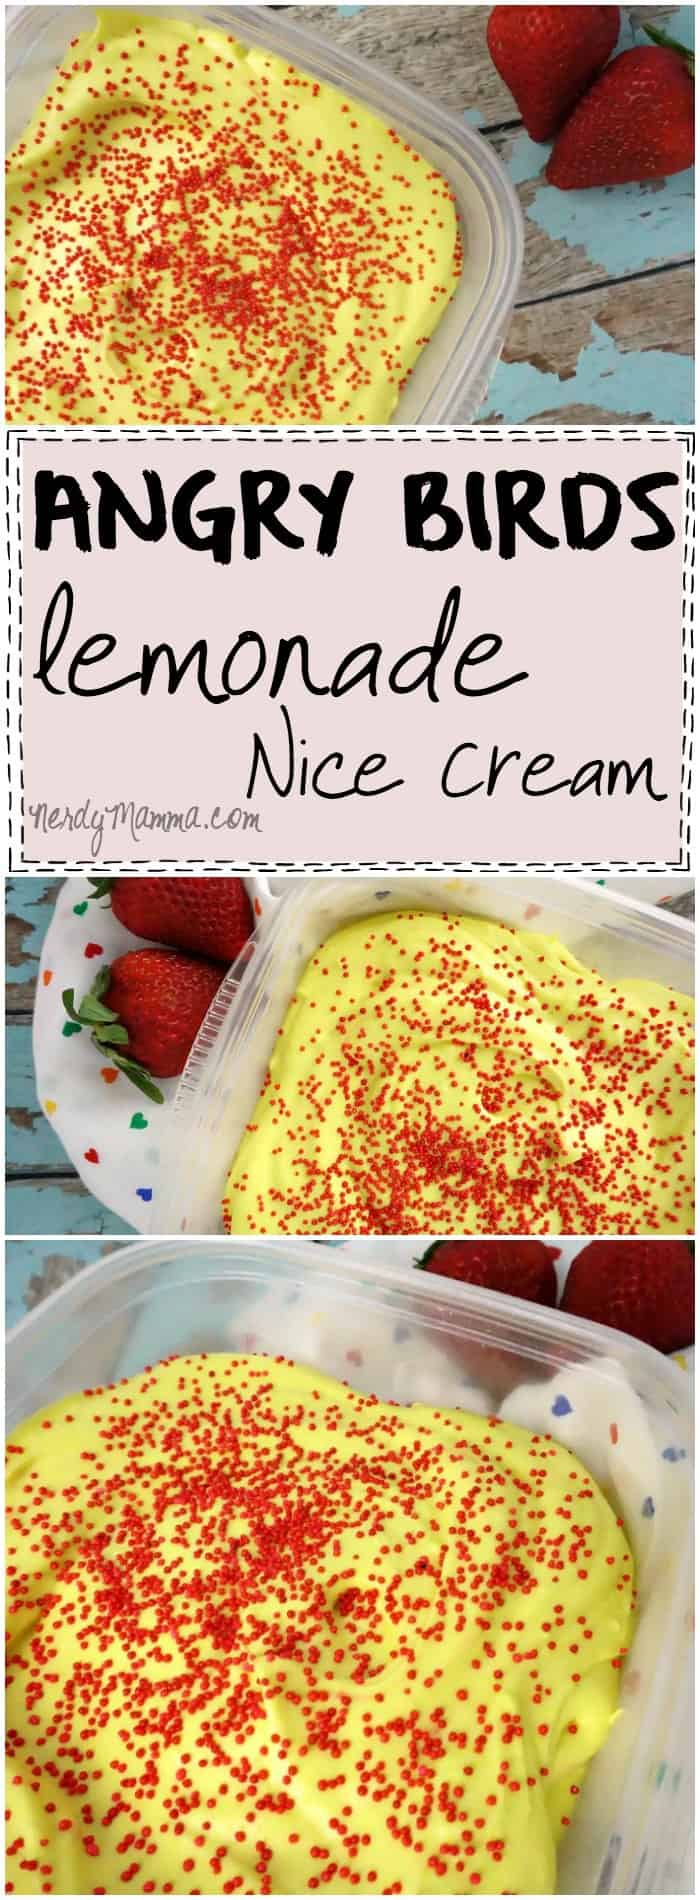 I absolutely love this easy recipe for dairy-free ice cream. I mean coconut milk ice cream can be anything, huh And it tastes like lemonade! How very awesome.